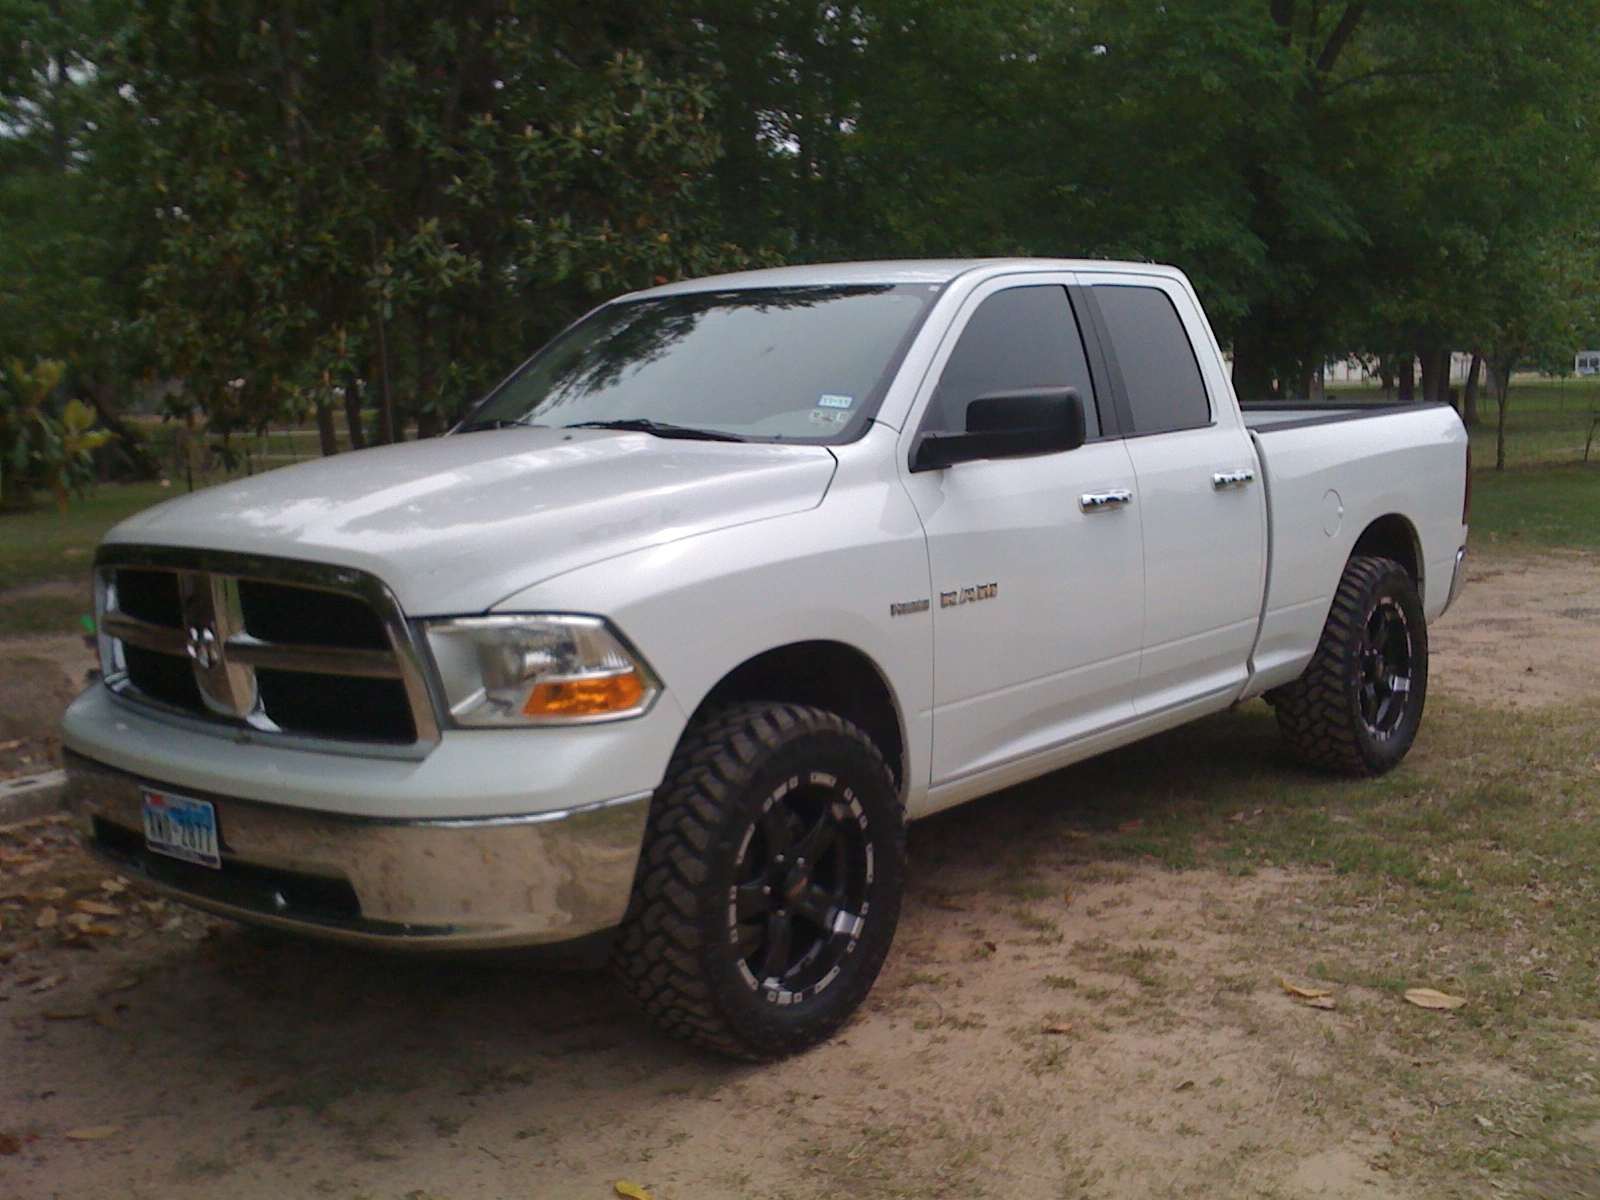 Carlost19 2010 dodge ram 1500 crew cabslt pickup 4d 5 1 2 ft specs photos modification info at - Crew cab dodge ram ...